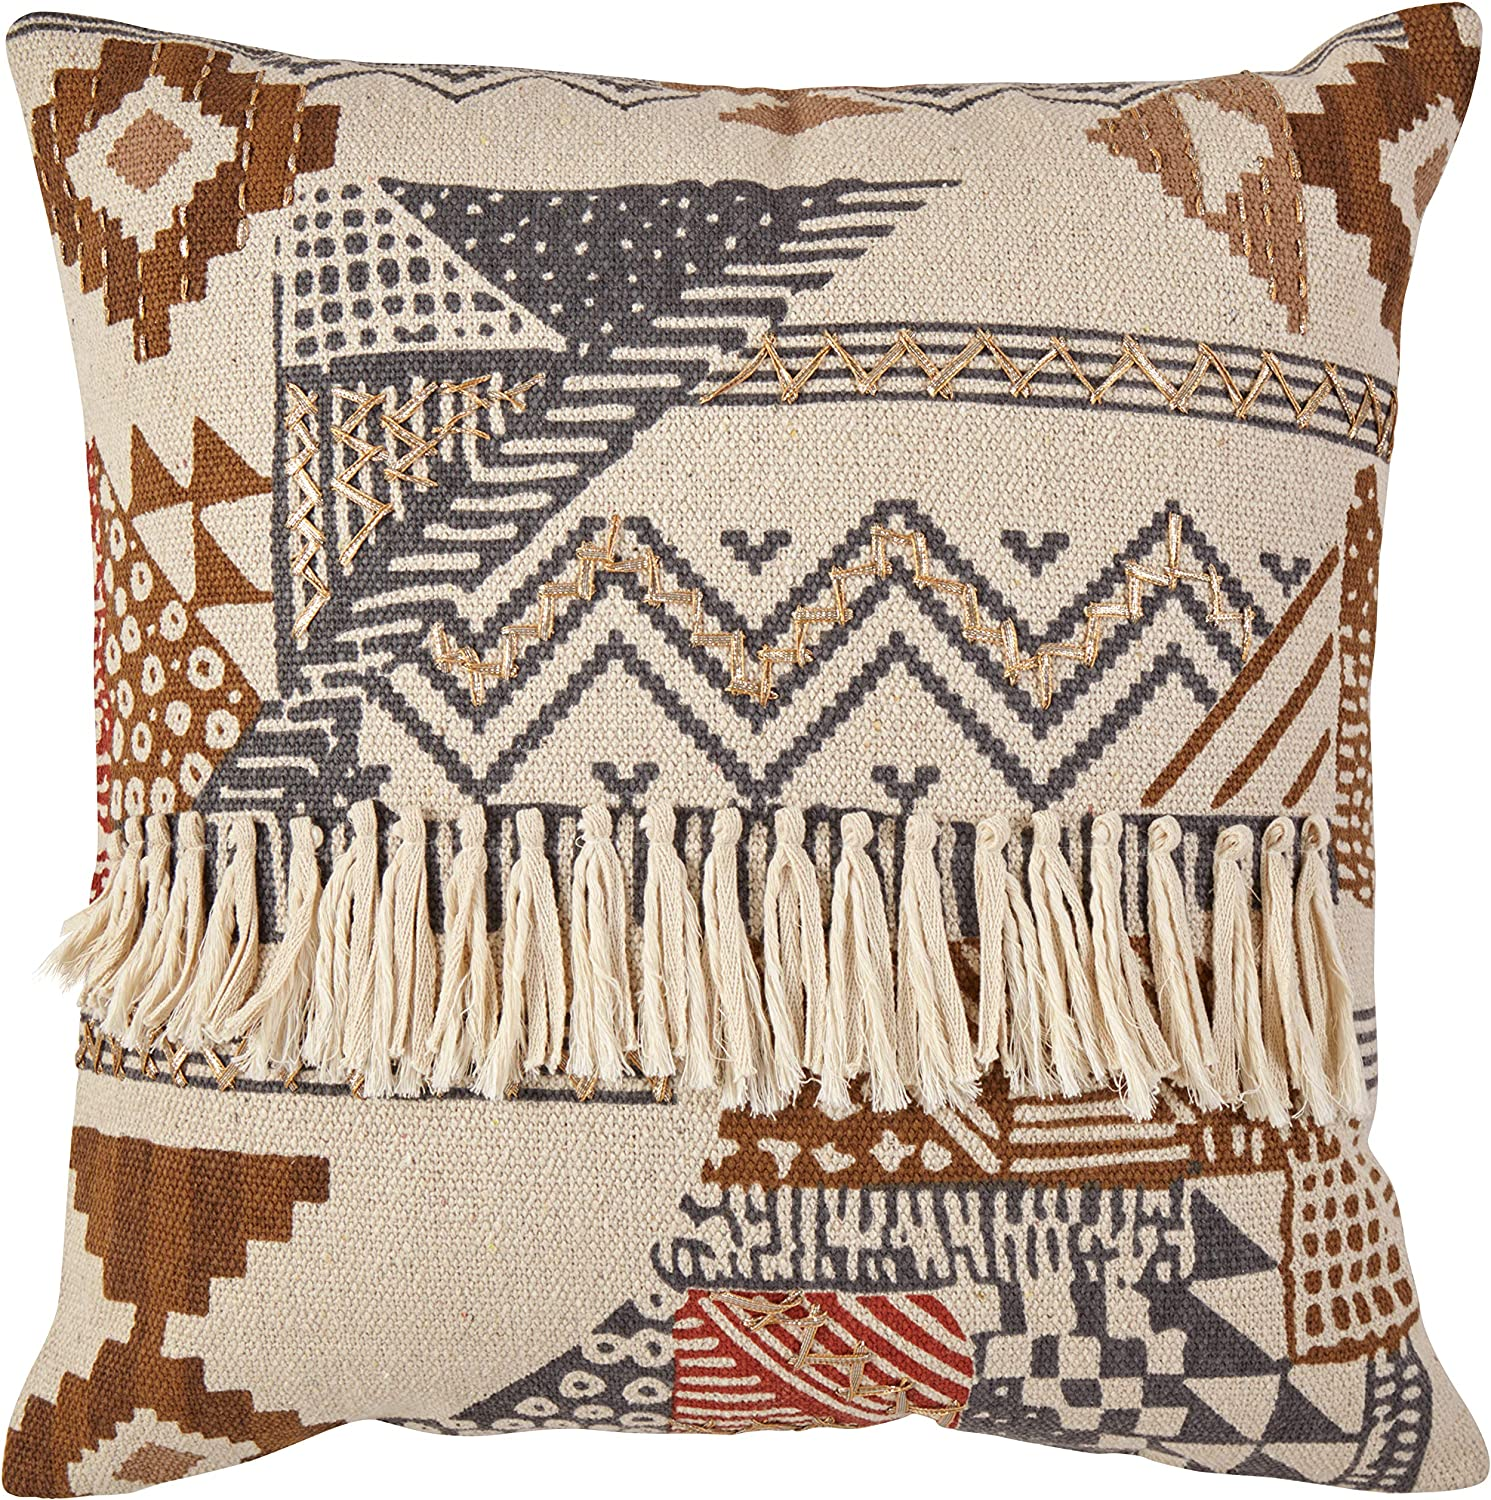 Amazon Brand Stone Beam Southwestern Throw Pillow 20 X 20 Inch Multicolored Home Kitchen